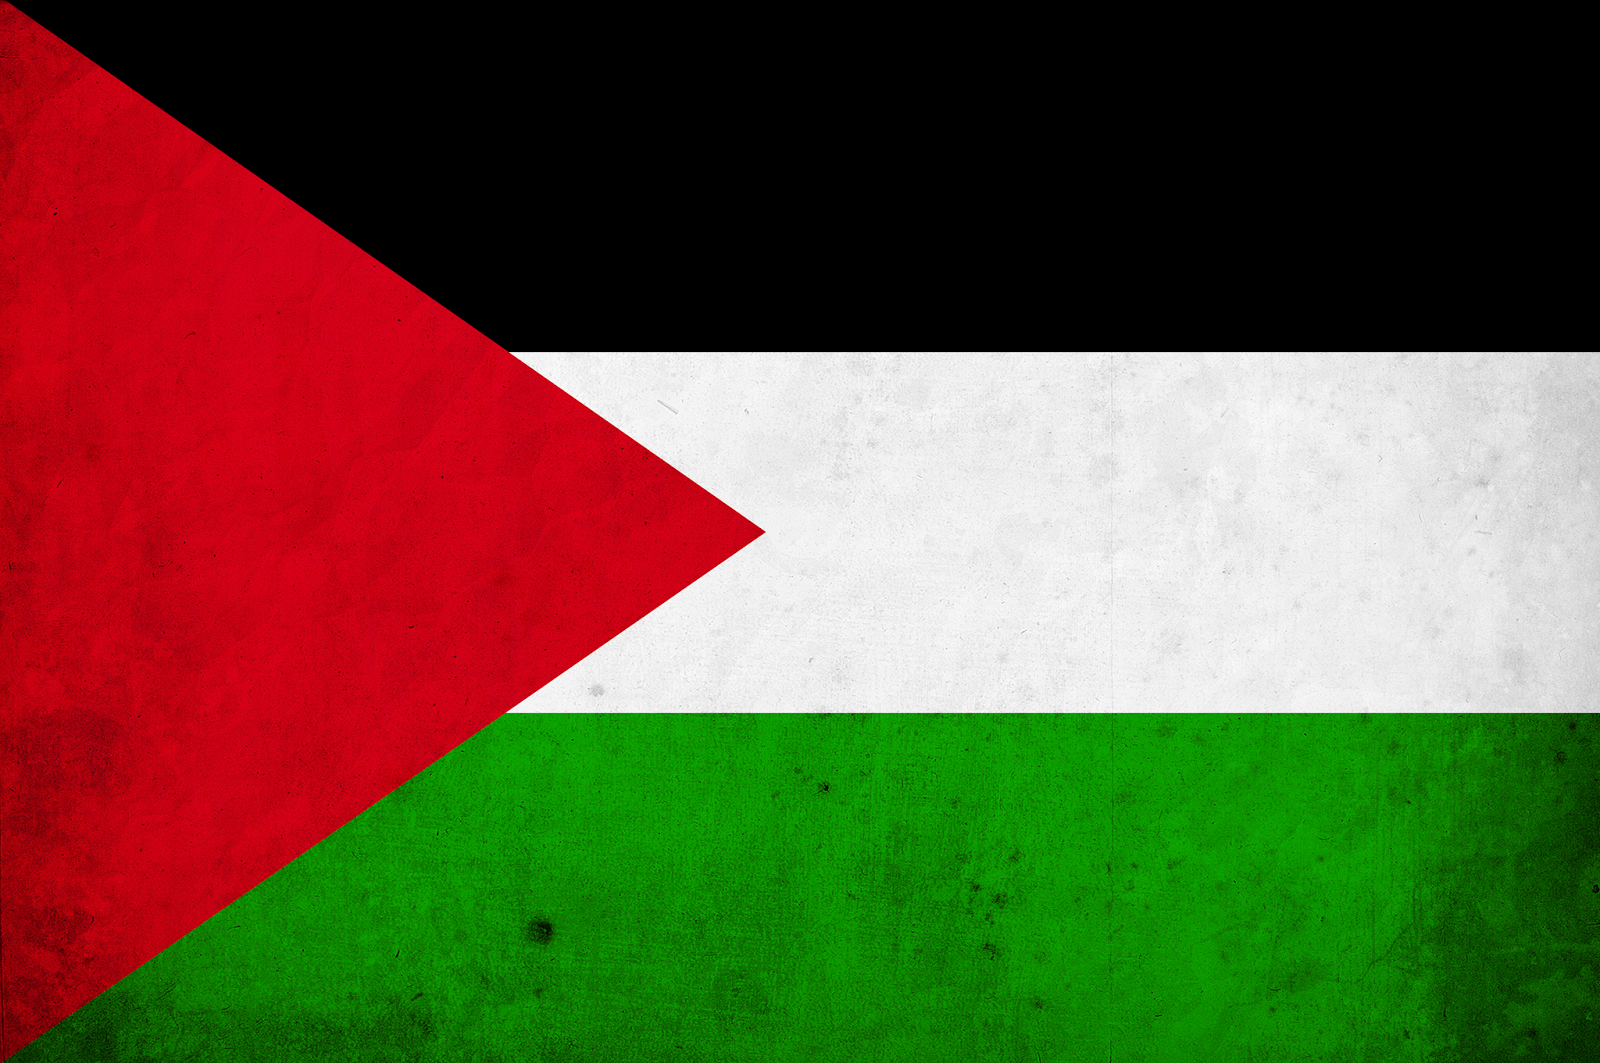 Palestine flag png hd pictures 3000x4515 px png vectors photos free download pngpedia - Palestine flag wallpaper hd ...